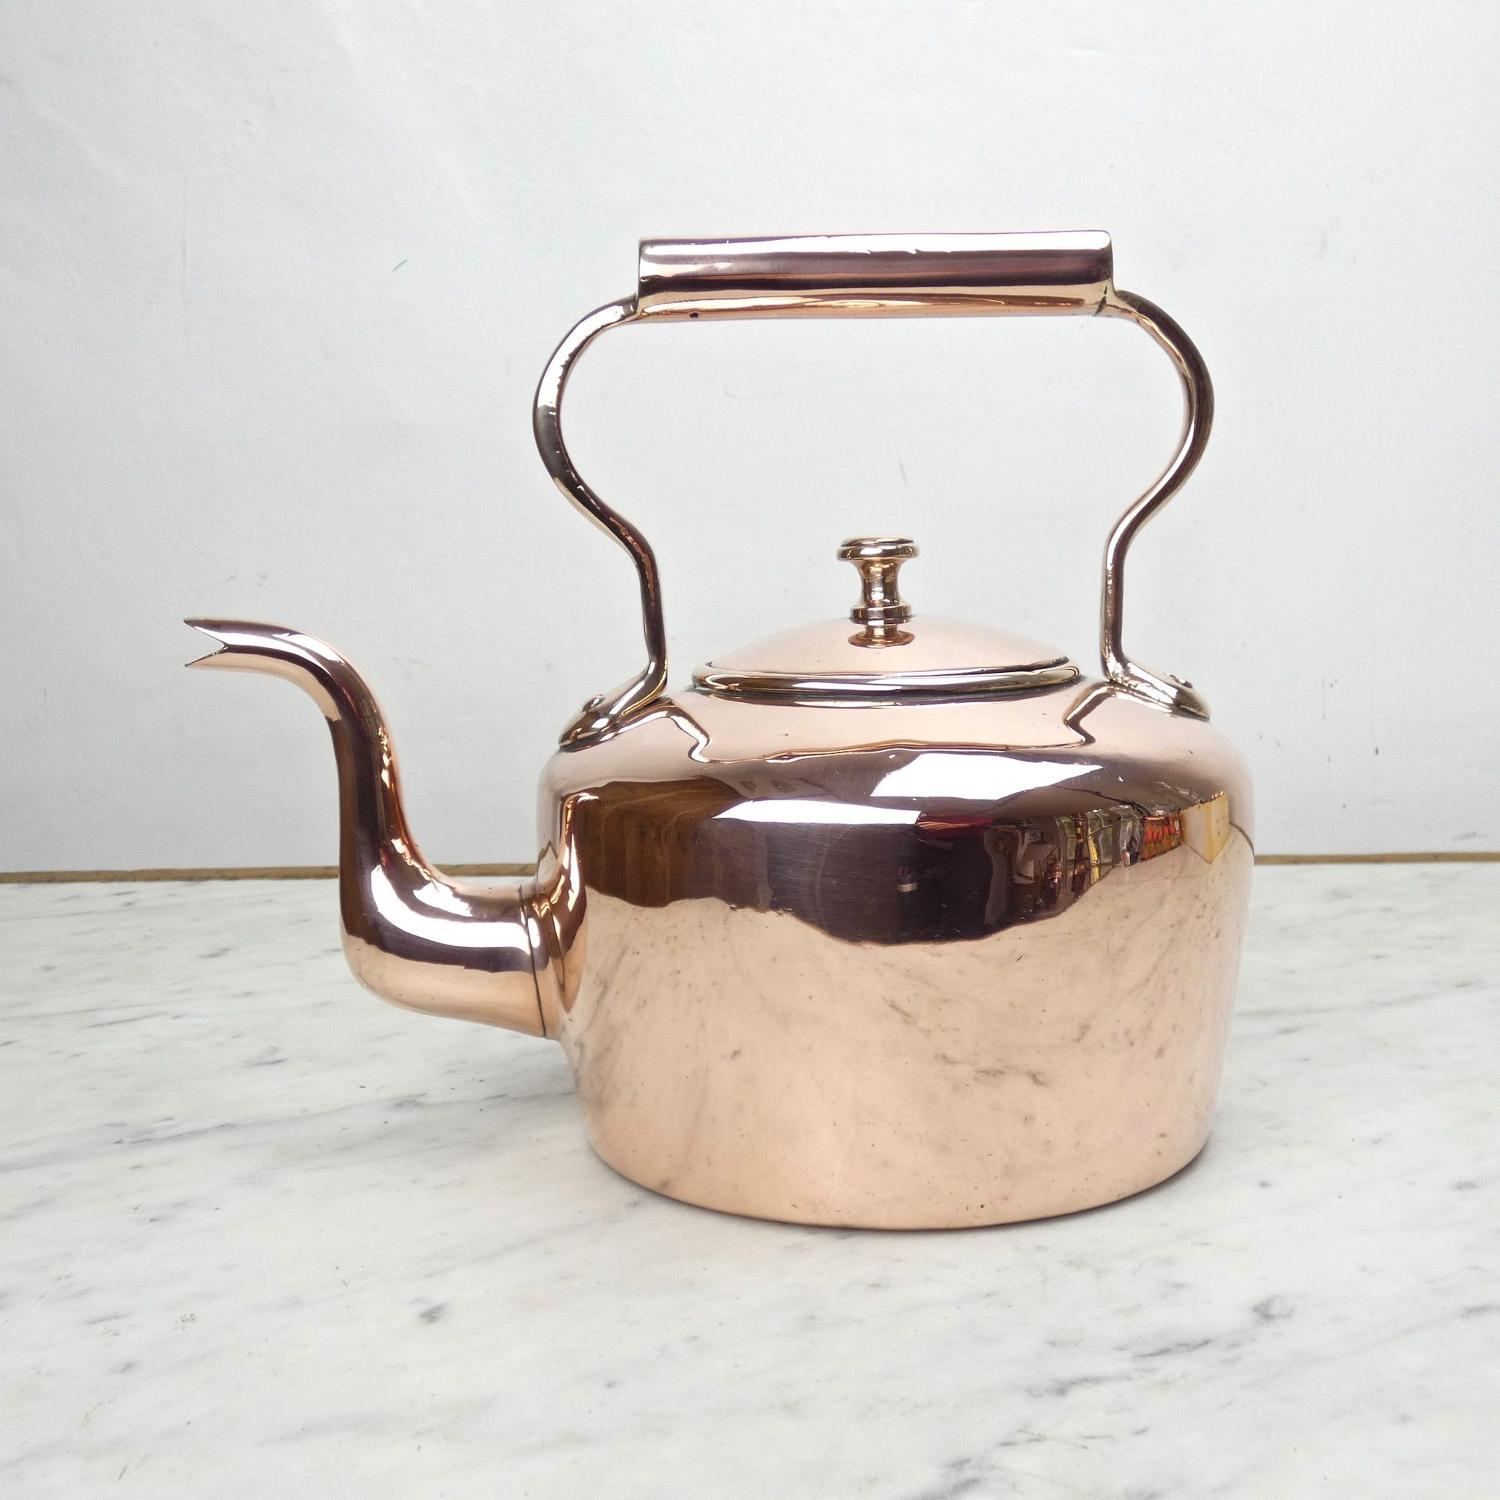 English copper kettle.